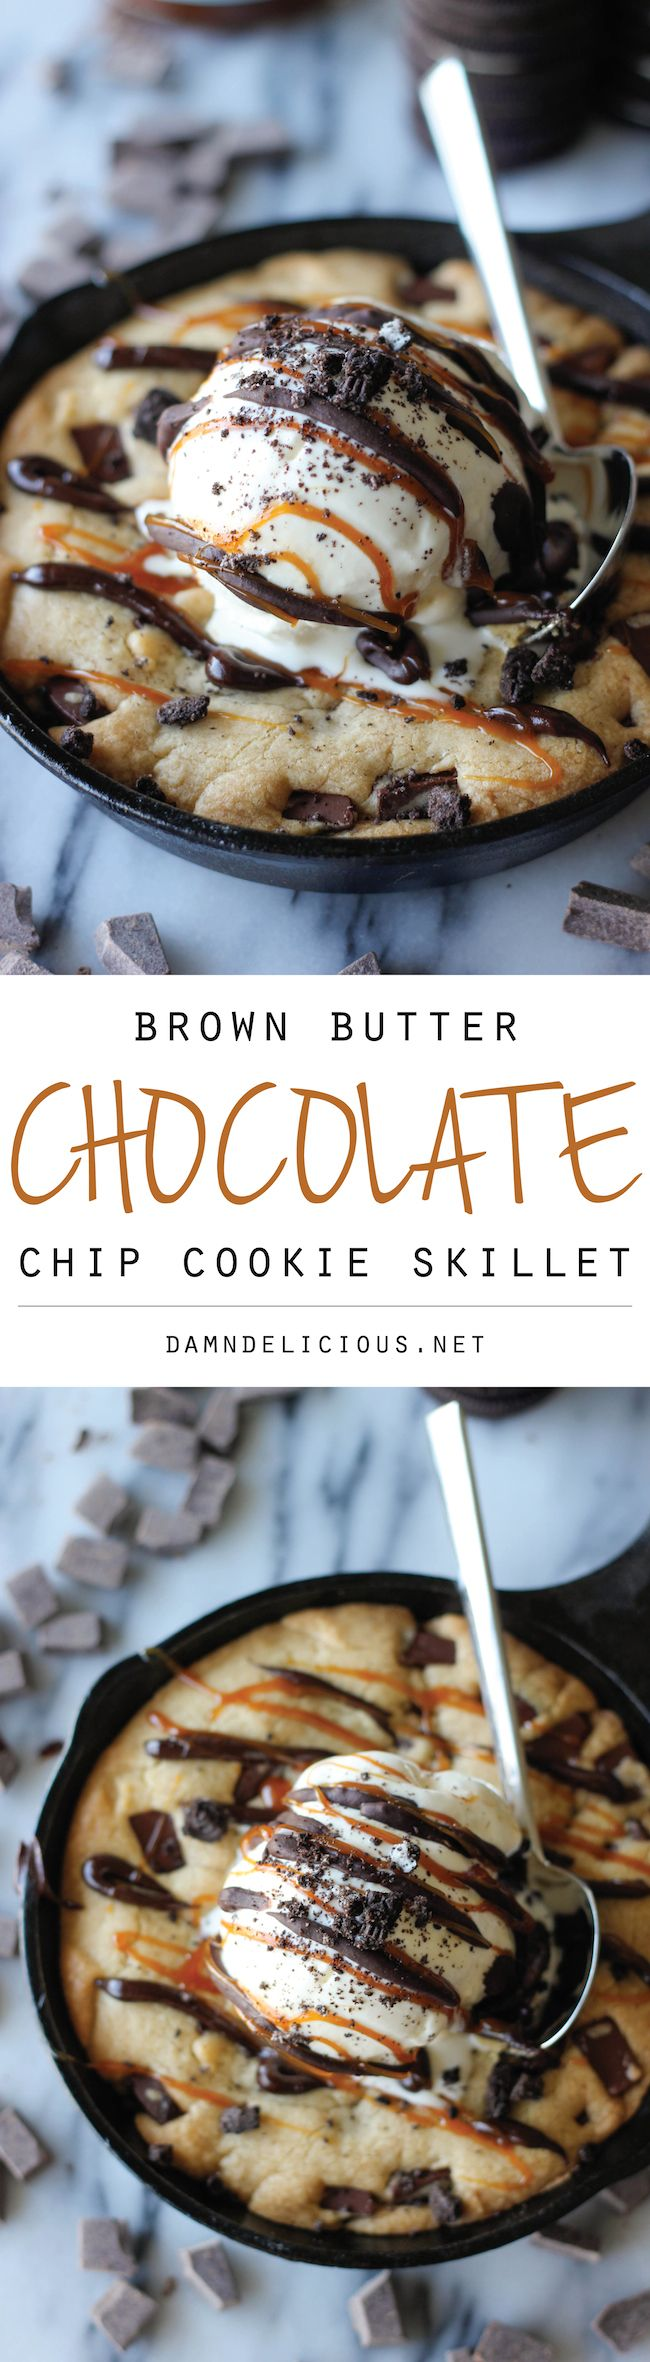 "Brown Butter Chocolate Chip Cookie Skillet (""Pizookie"")"